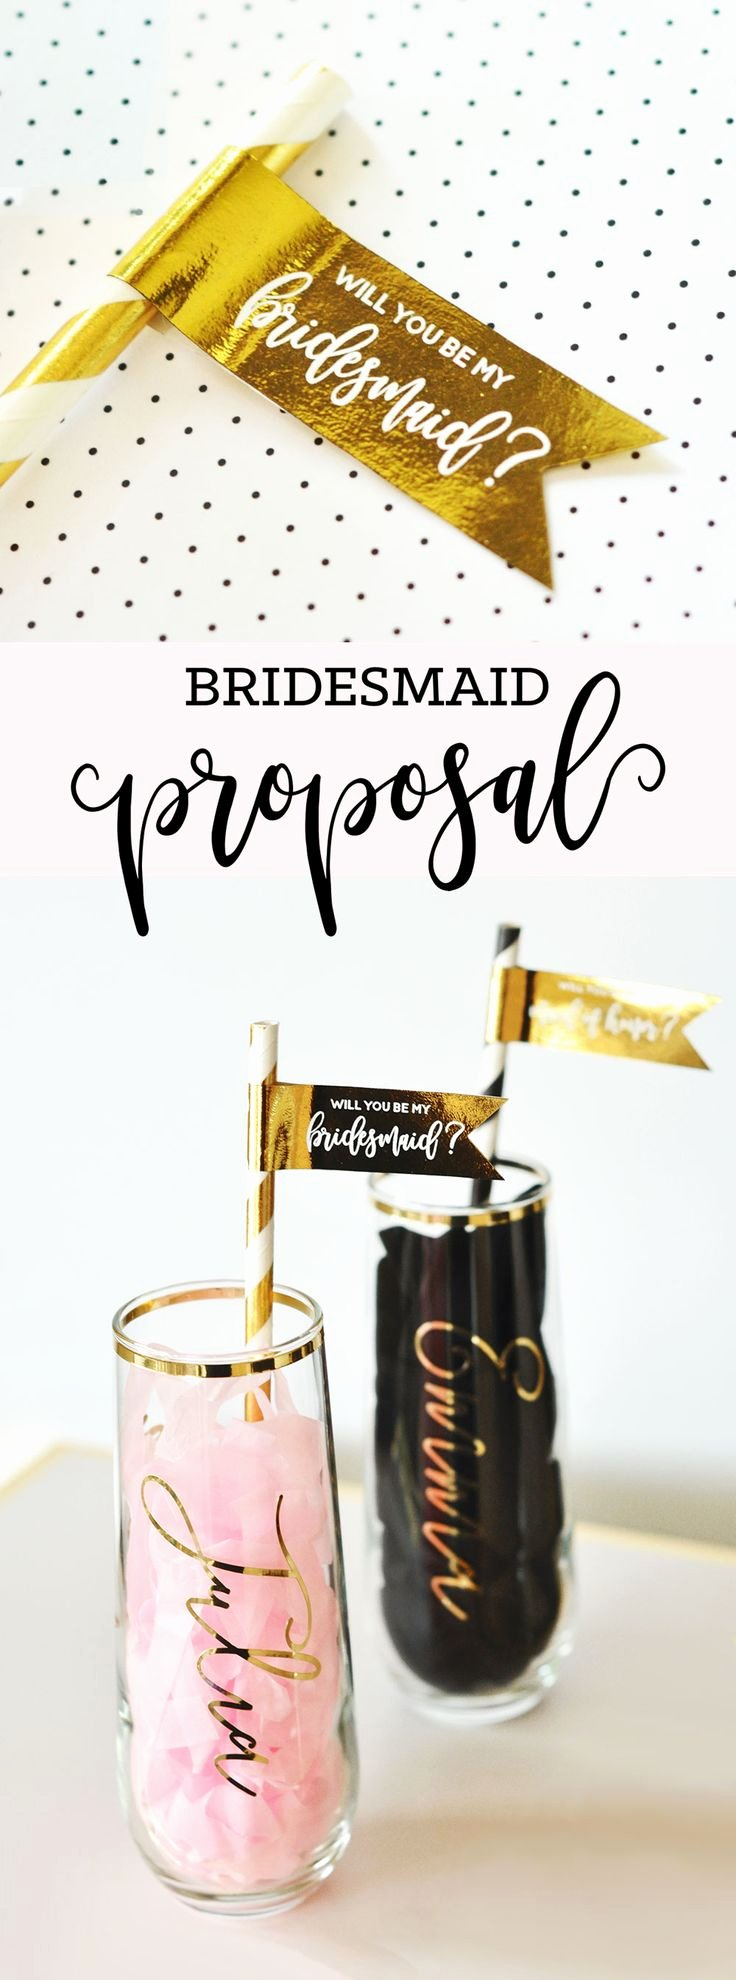 Bridesmaid Proposal Letter Best Of 1000 Ideas About Proposal Letter On Pinterest